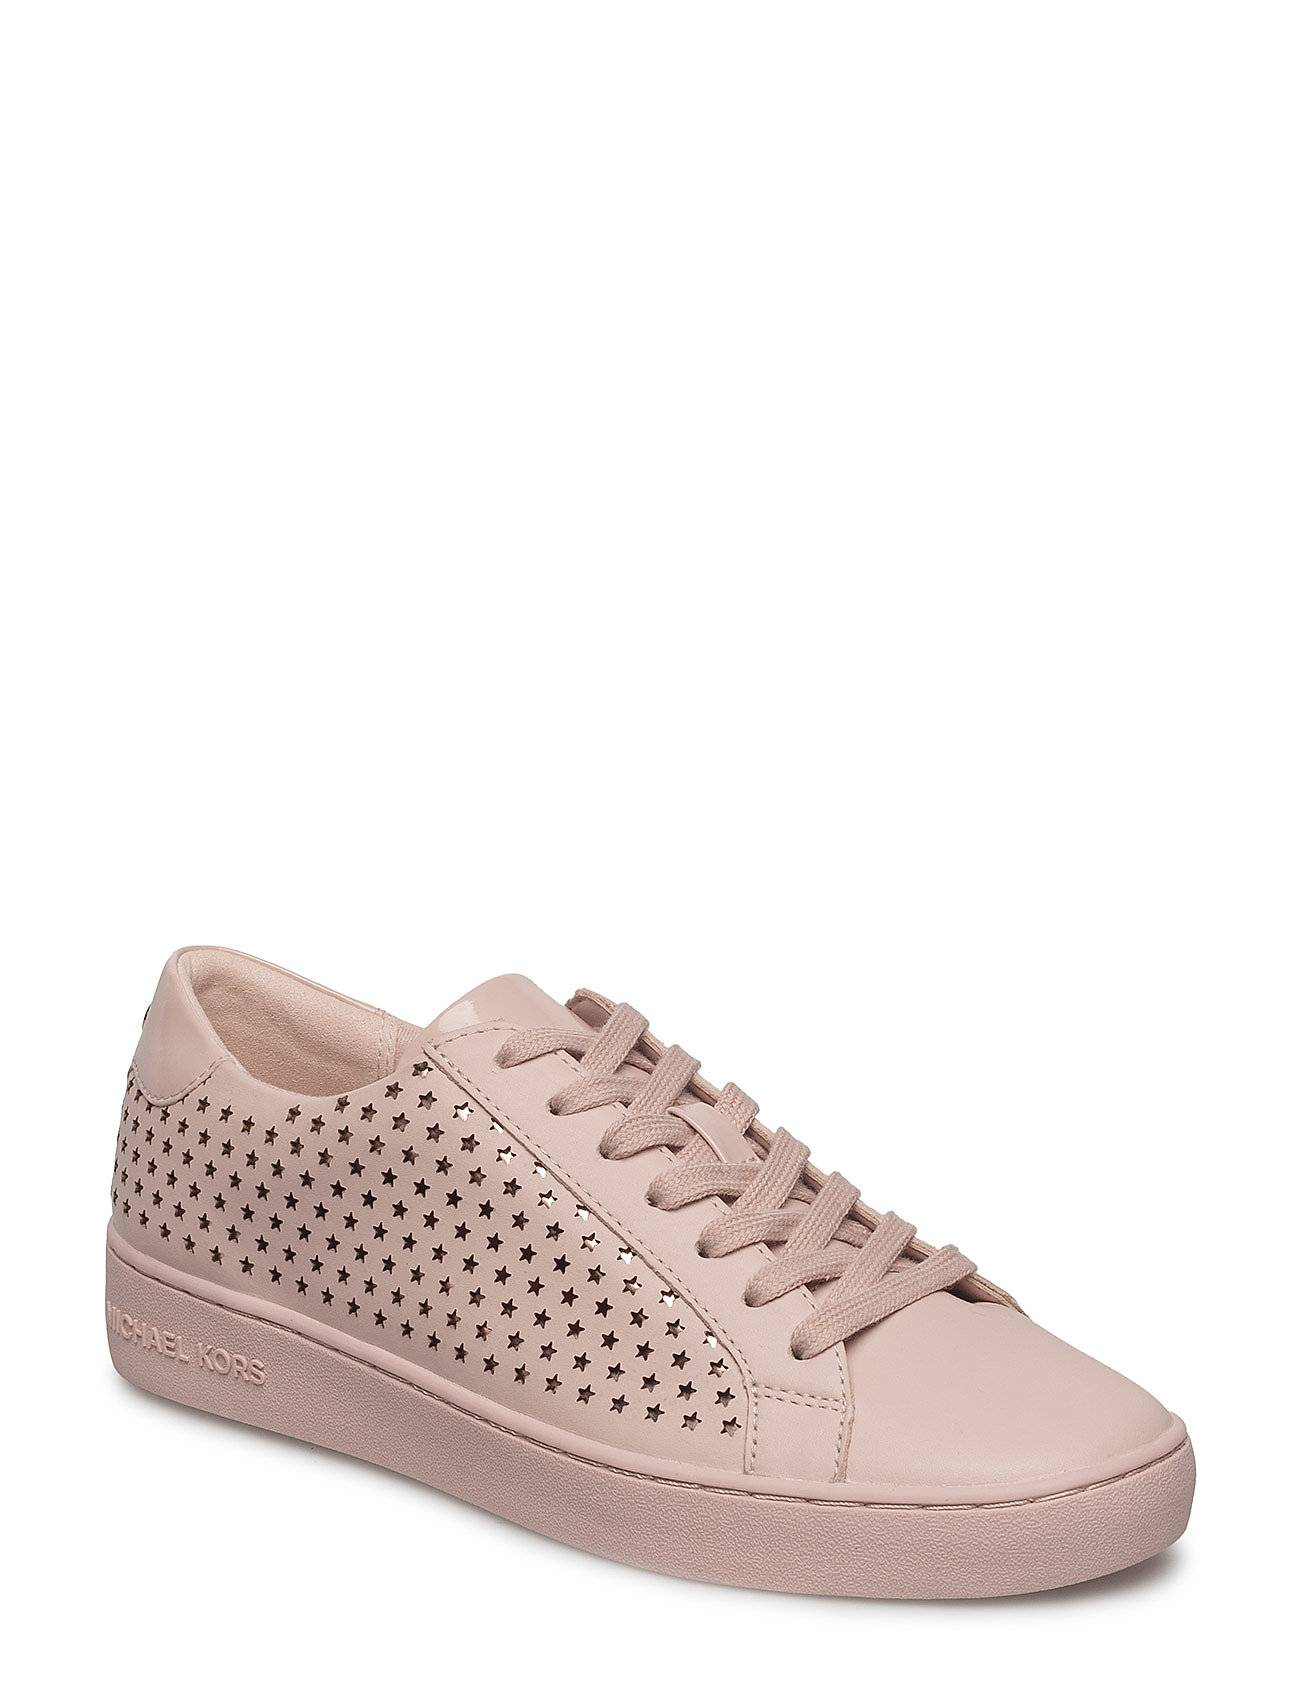 Michael Kors Shoes Irving Lace Up